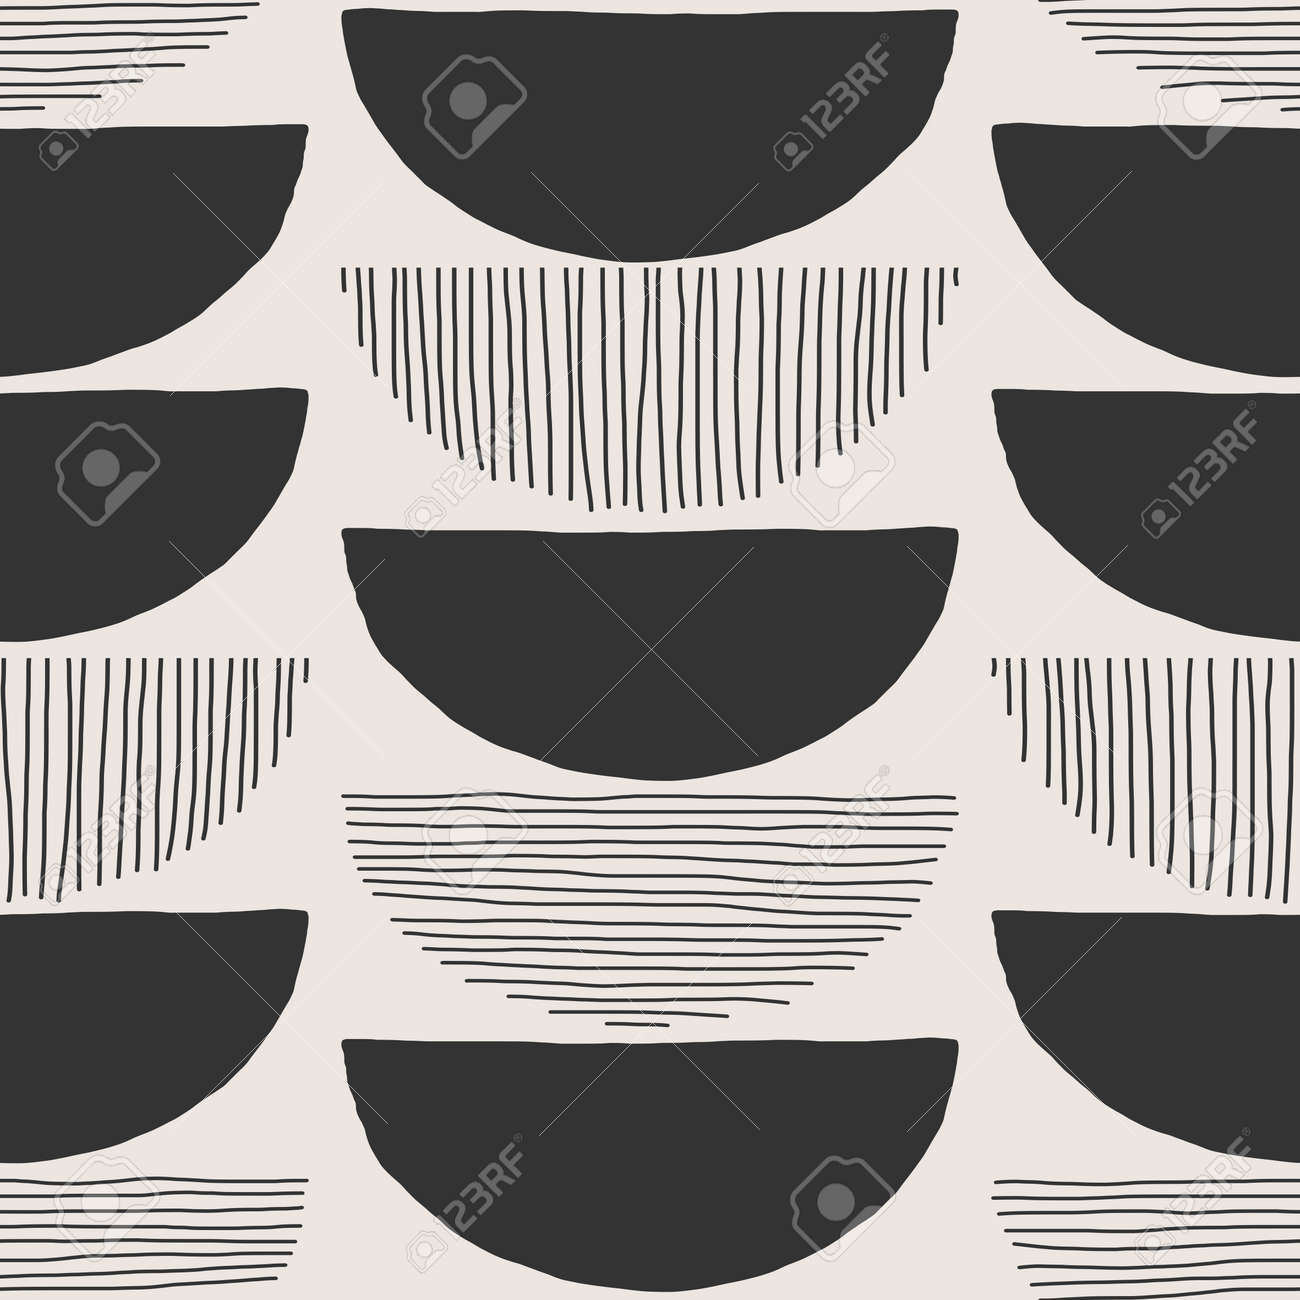 Trendy minimalist seamless pattern with abstract creative hand drawn composition - 169626218